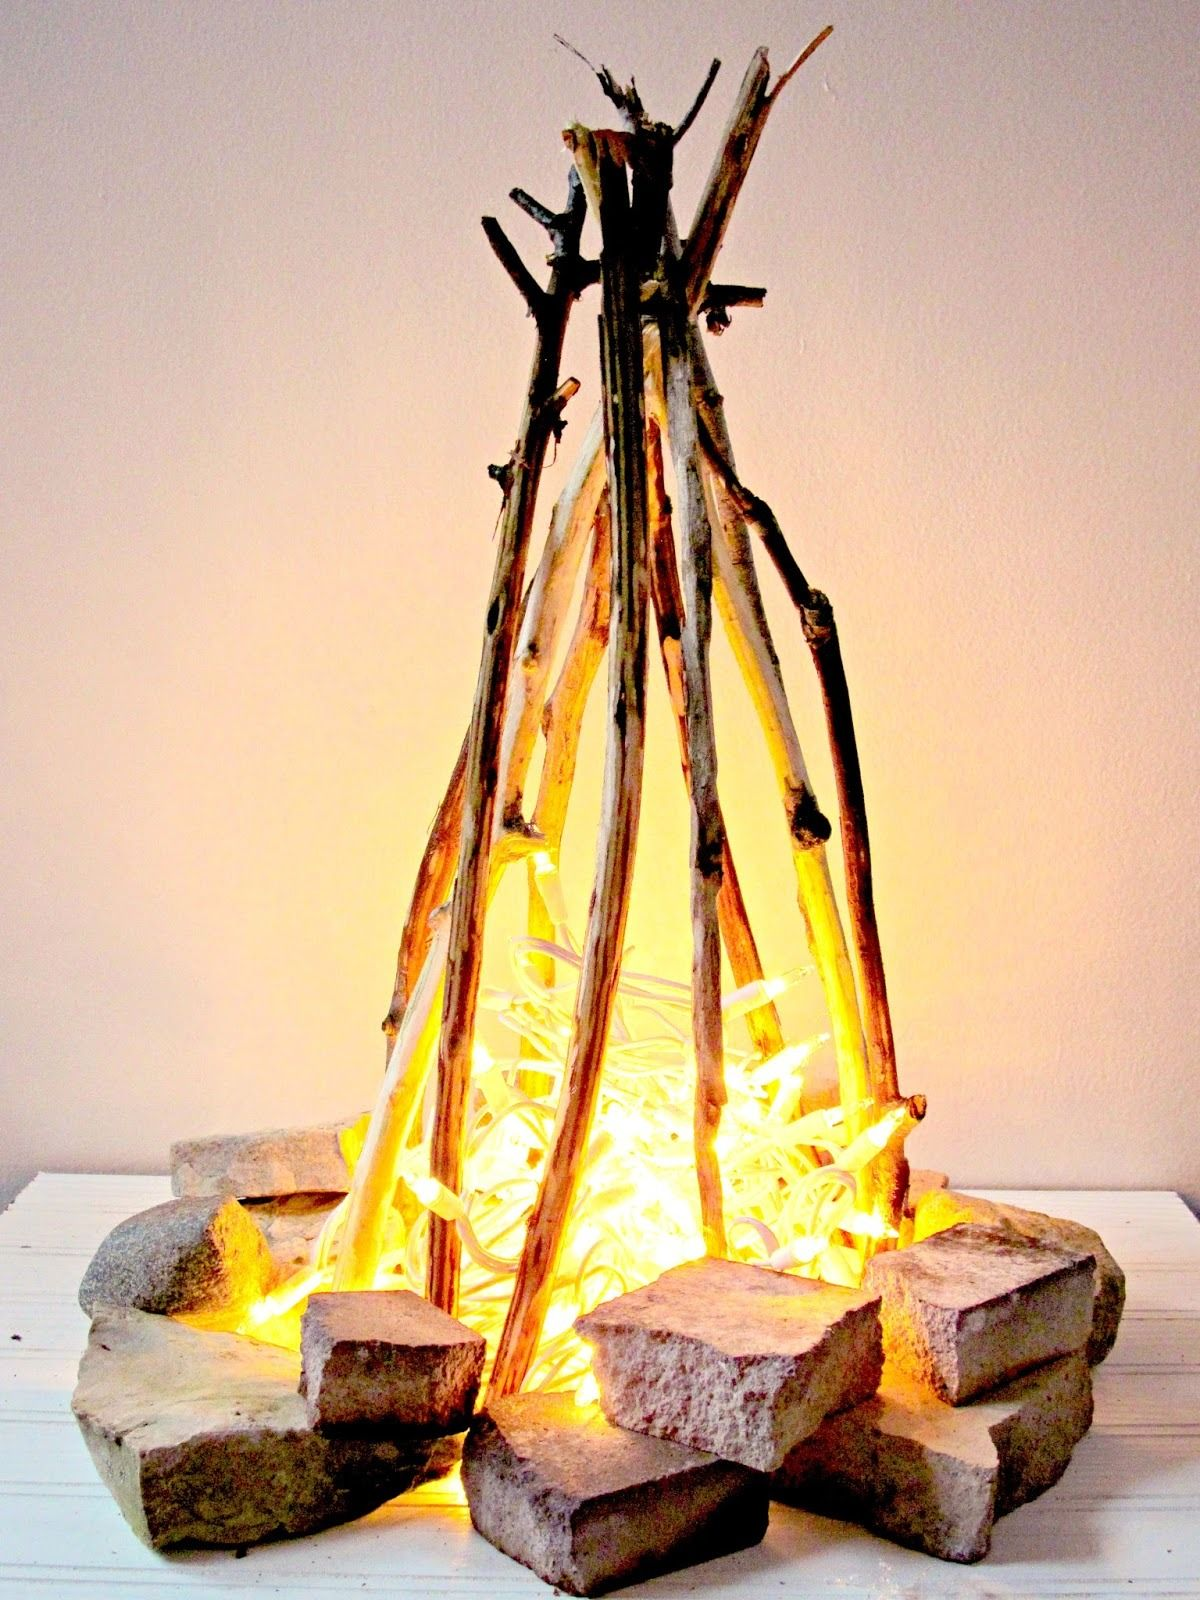 CreateForLess Tumblr — Flameless Fire Pit via October June - CreateForLess Tumblr — Flameless Fire Pit Via October June VBS